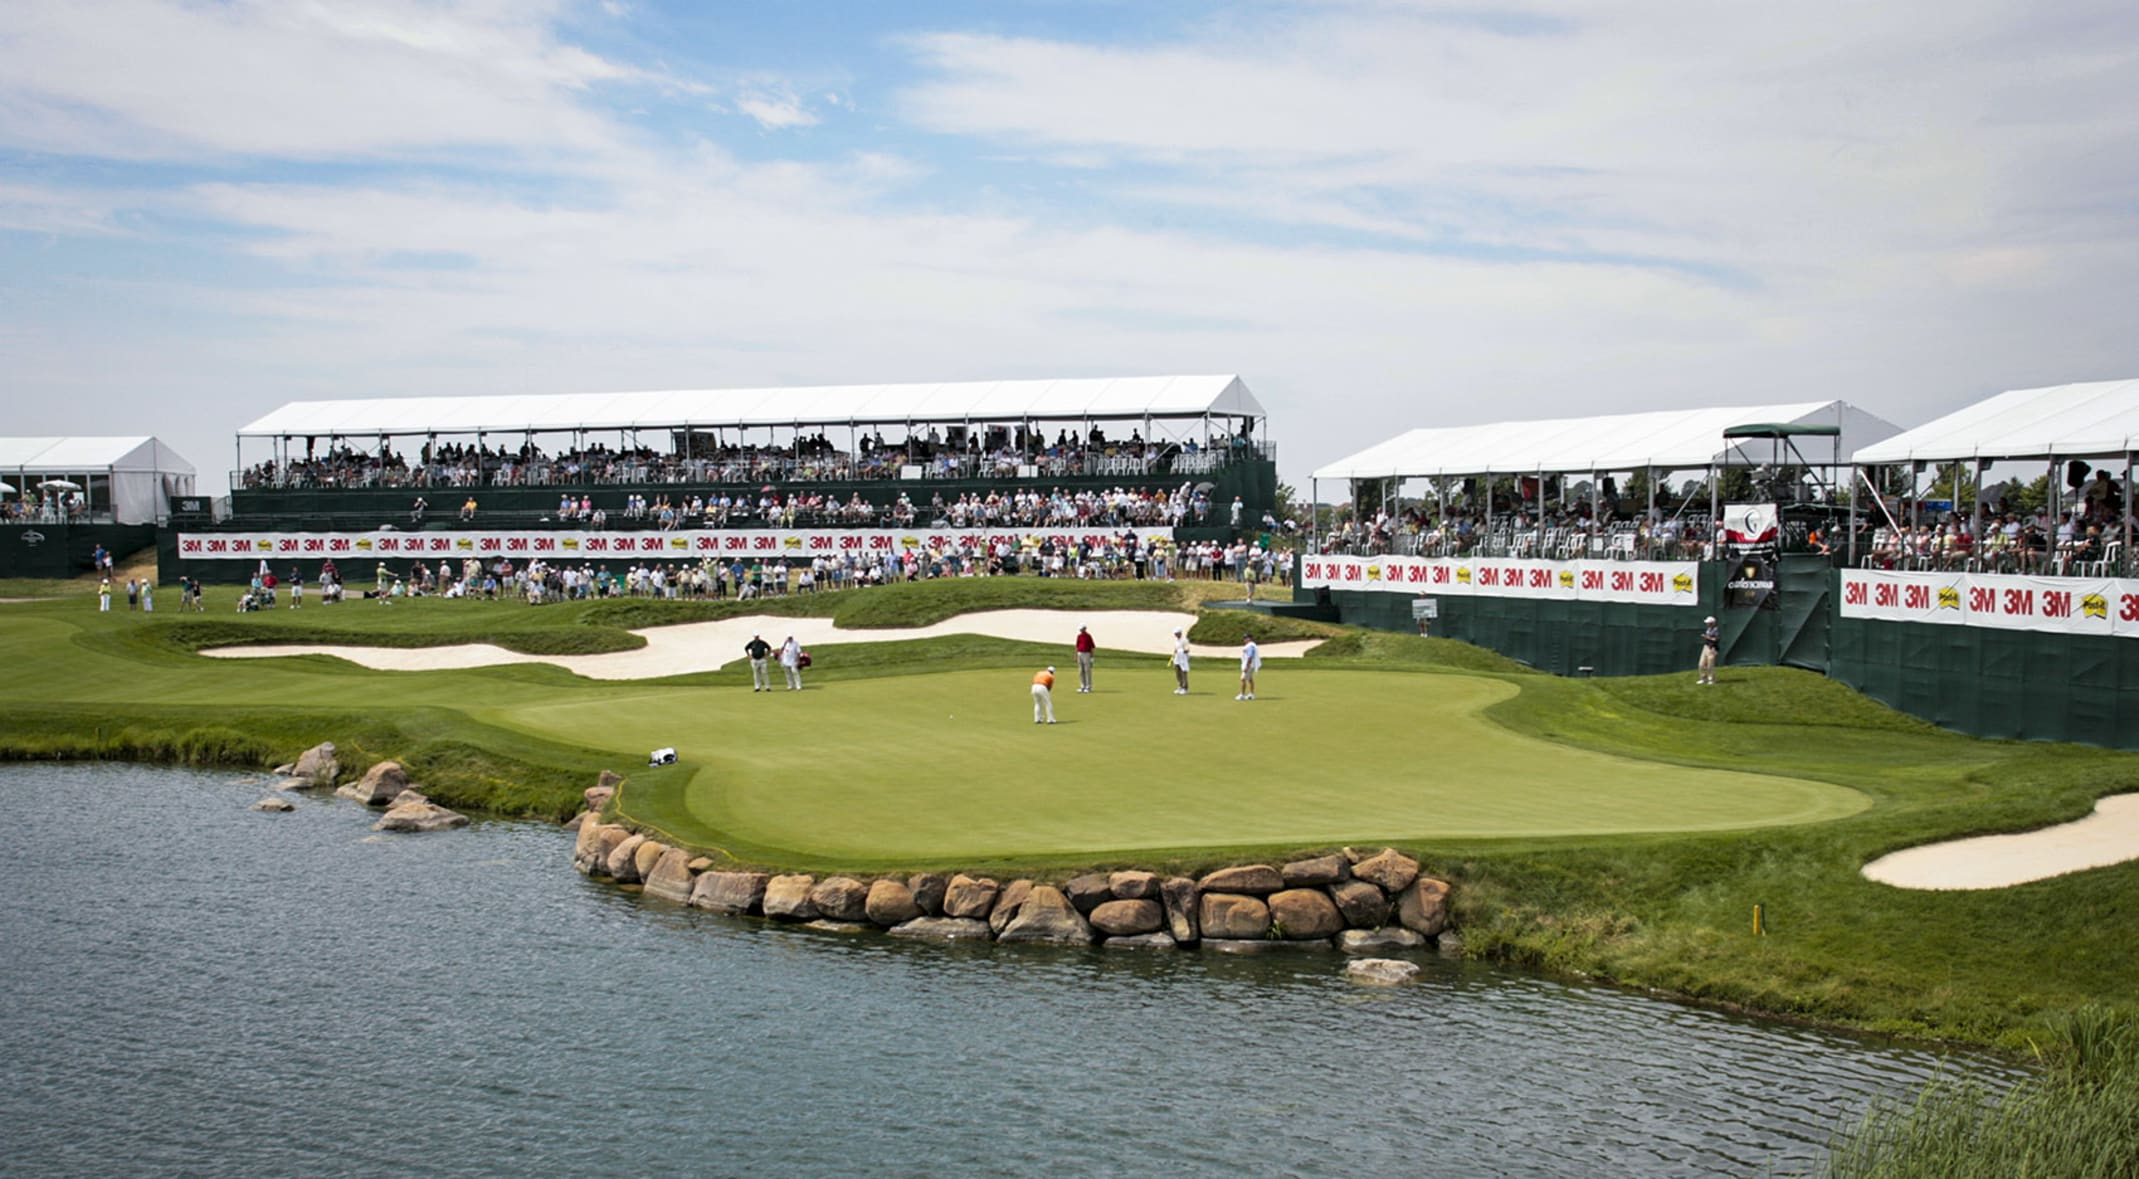 Pga tour must see sweepstakes